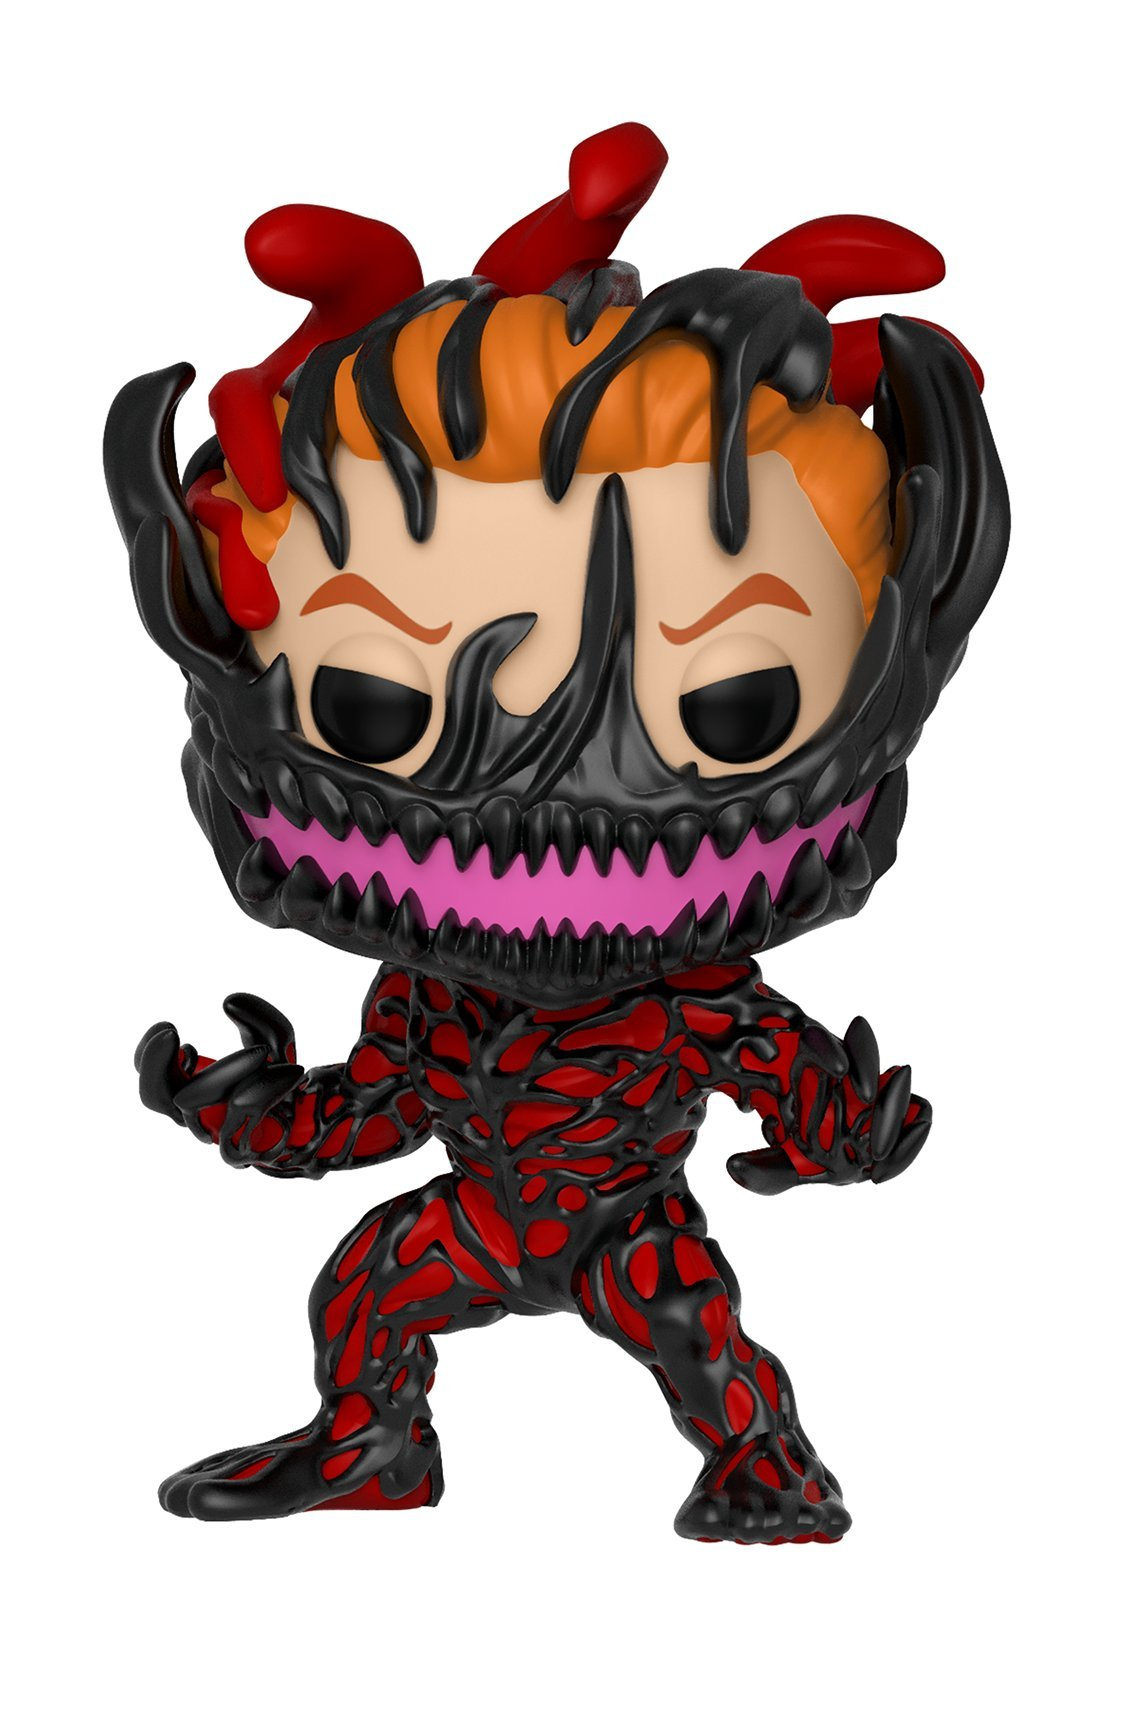 Buy Funko Pop Venom Now!